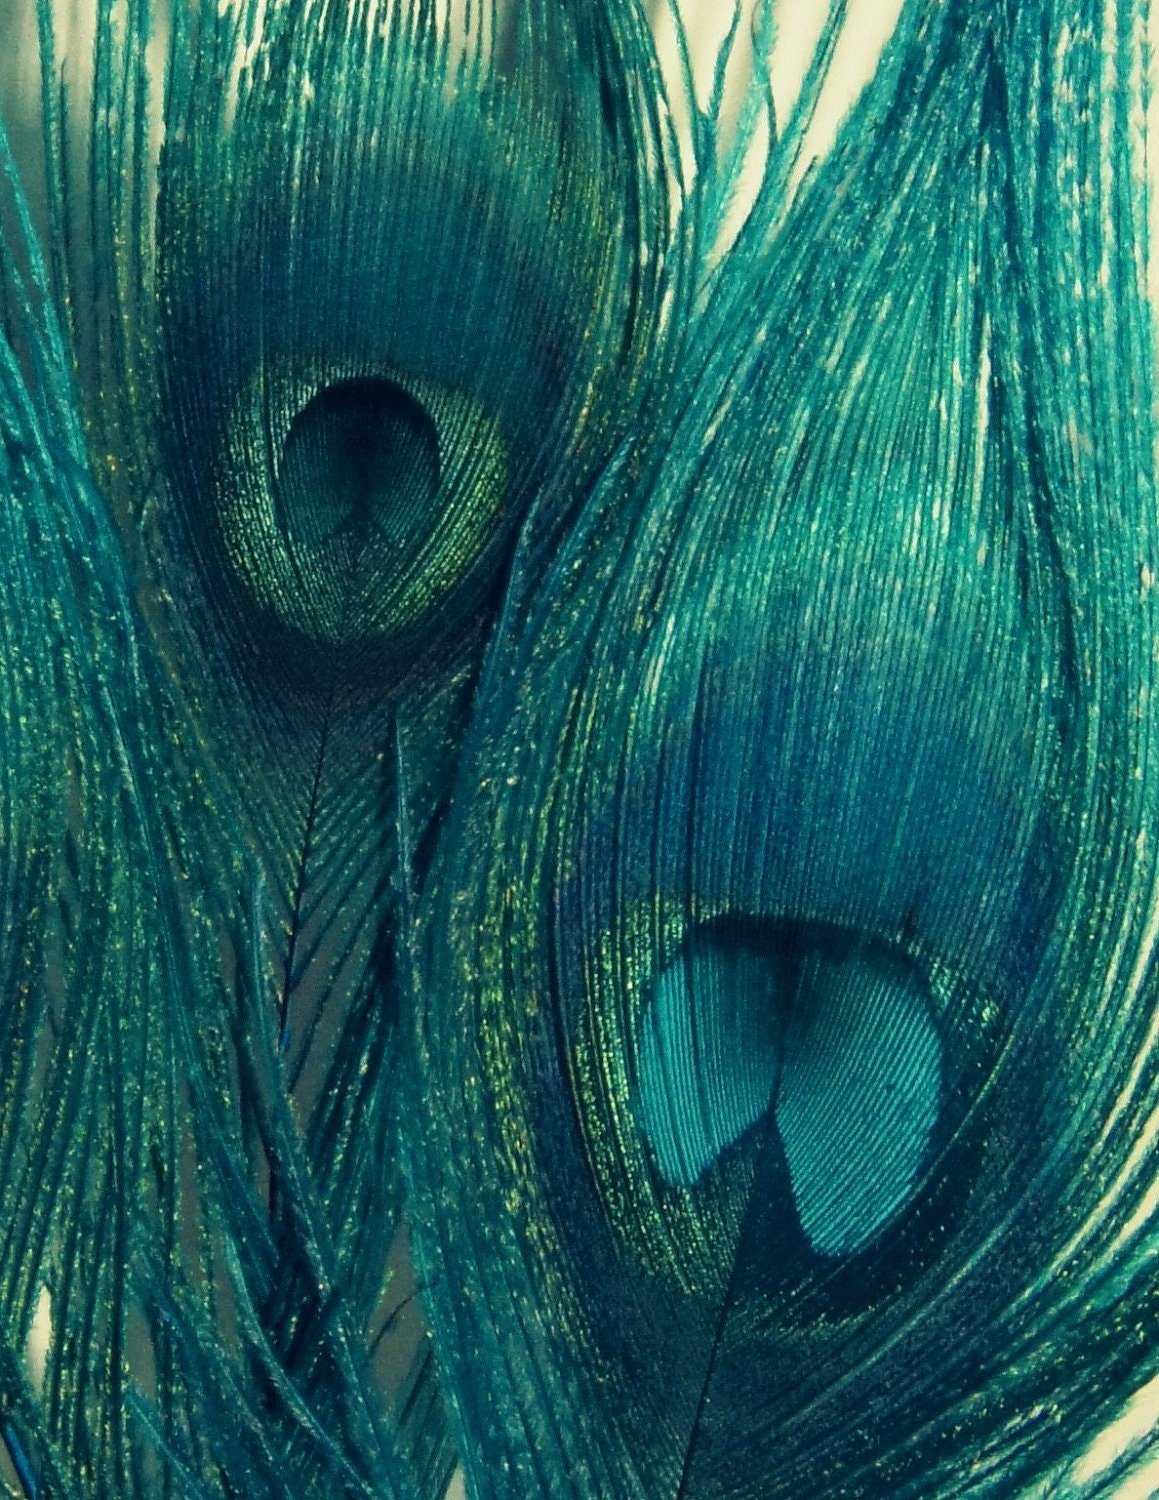 Teal Peacock Feathers Bird Feathers Blue Green Navy Home